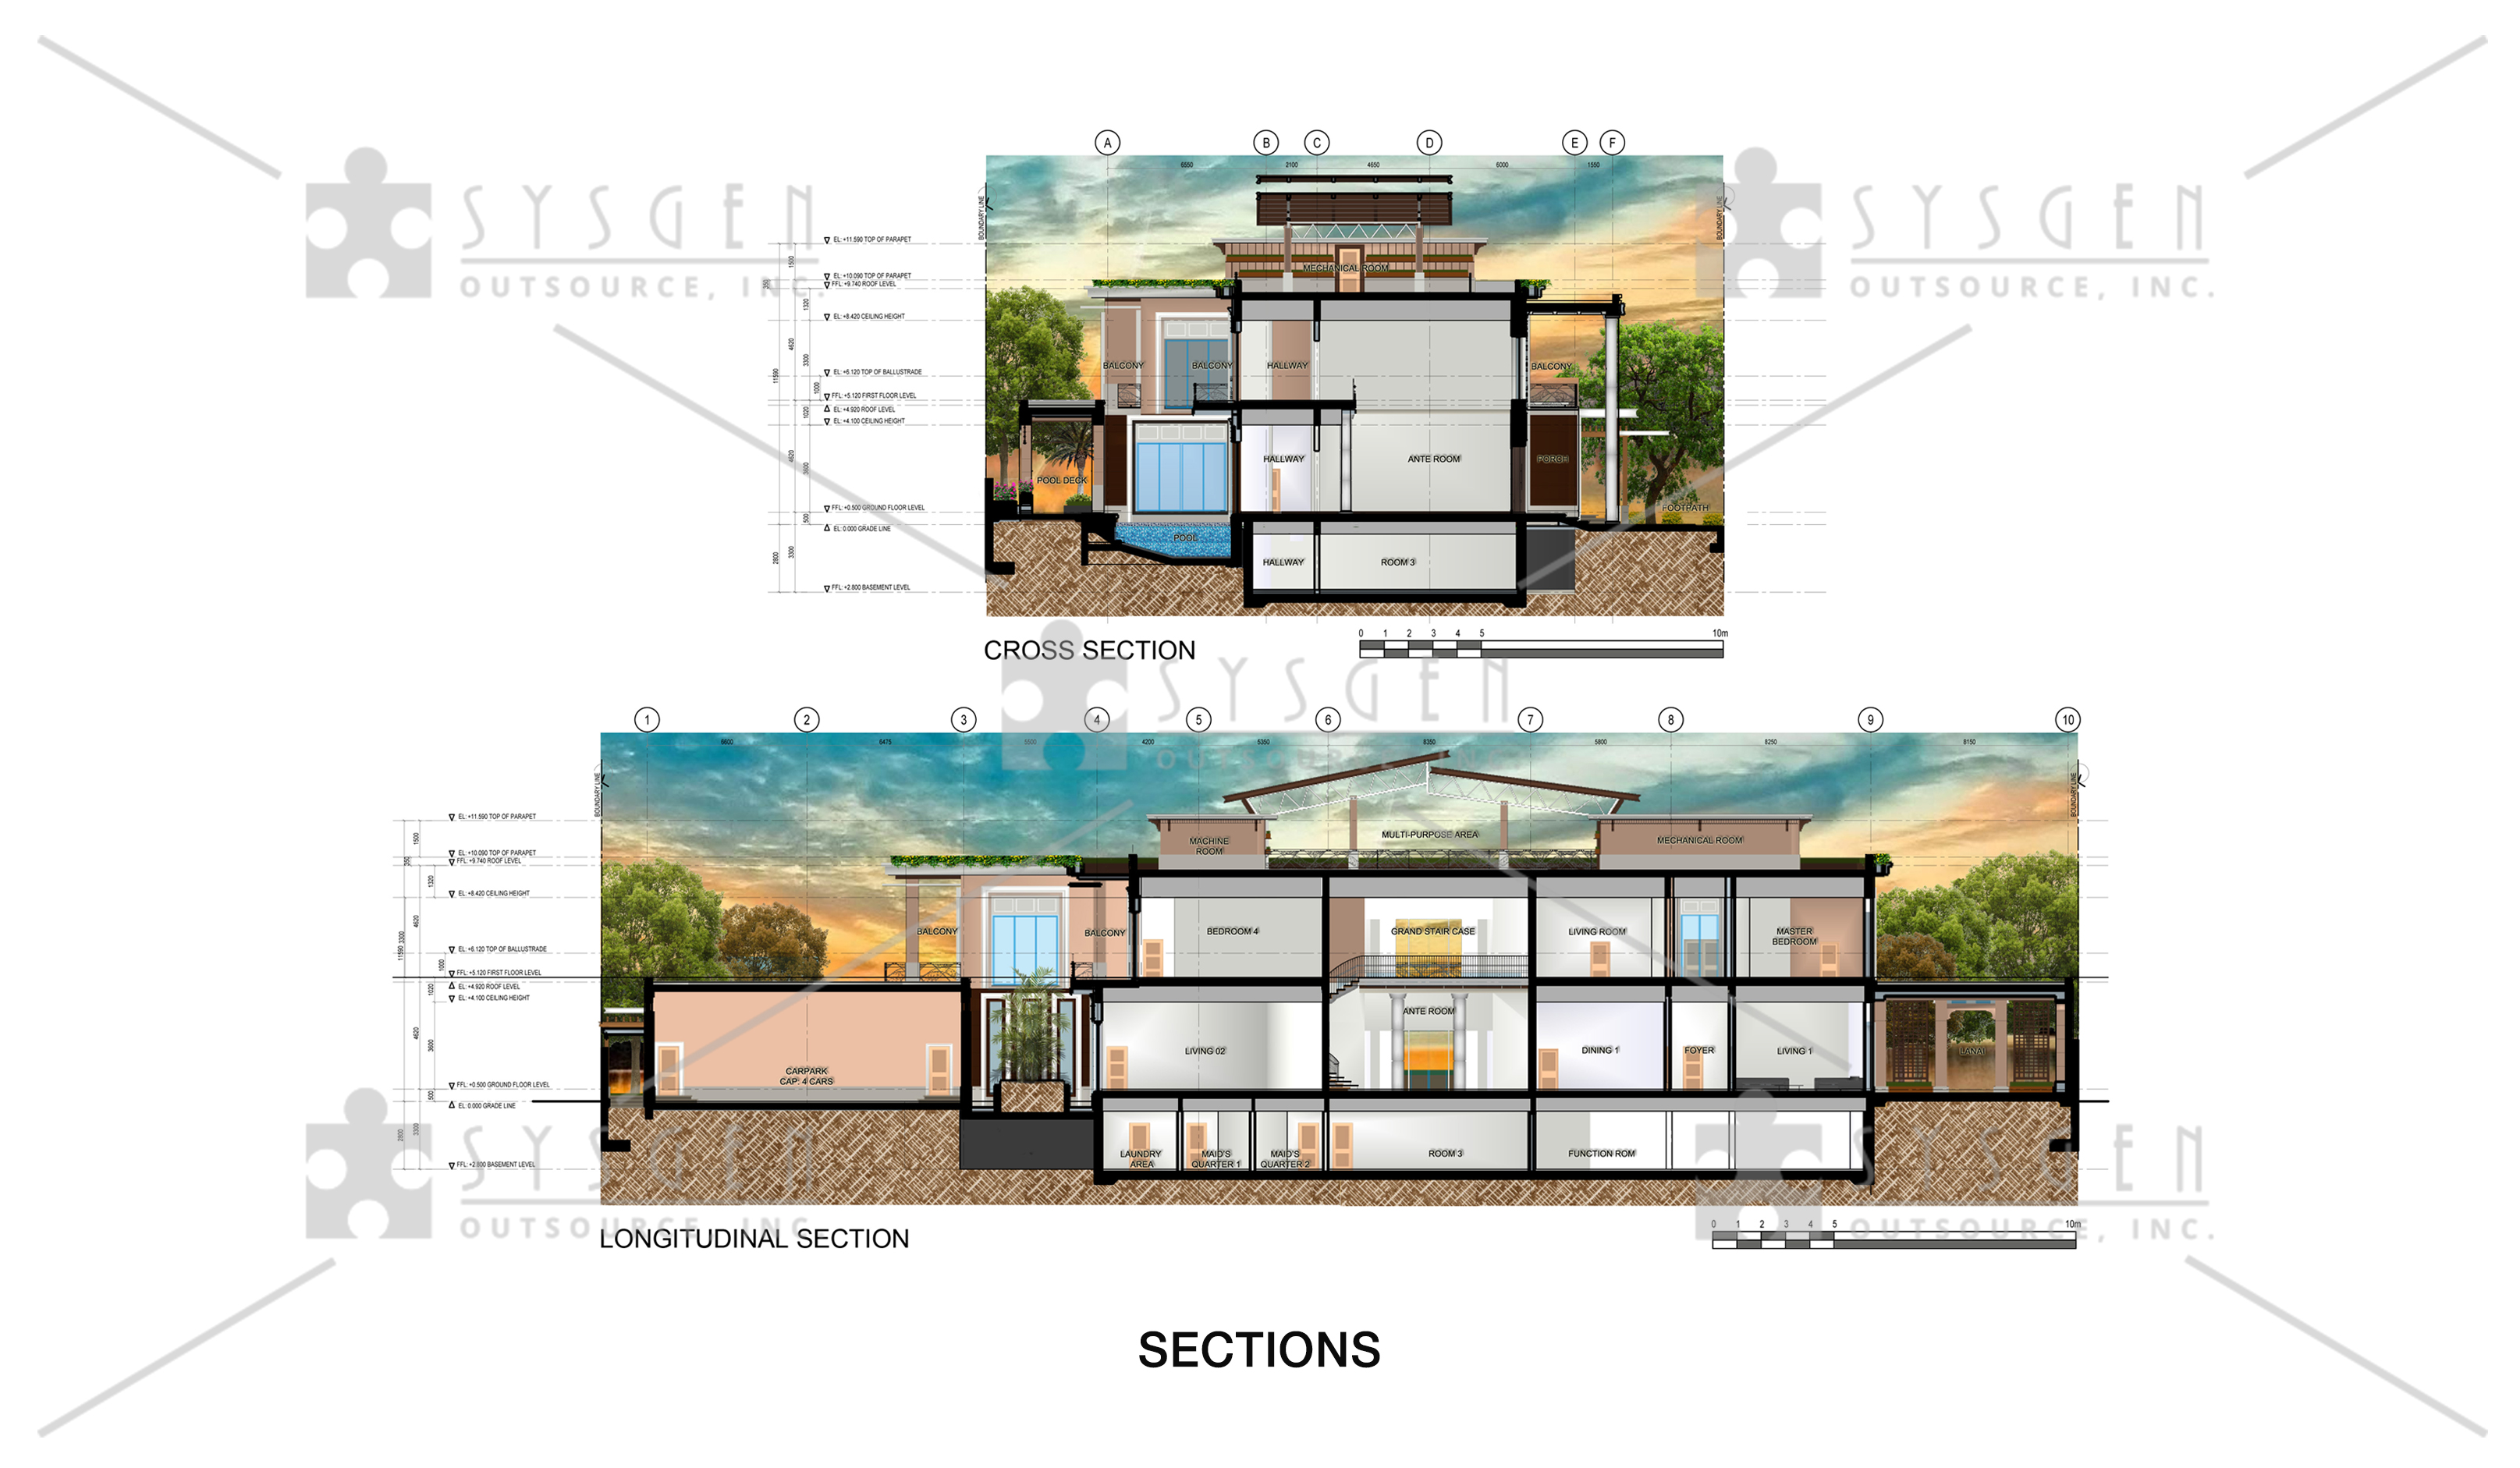 sysgen-outsource-cad-outsourcing-services-sketch-up-residential_villa-katnis10